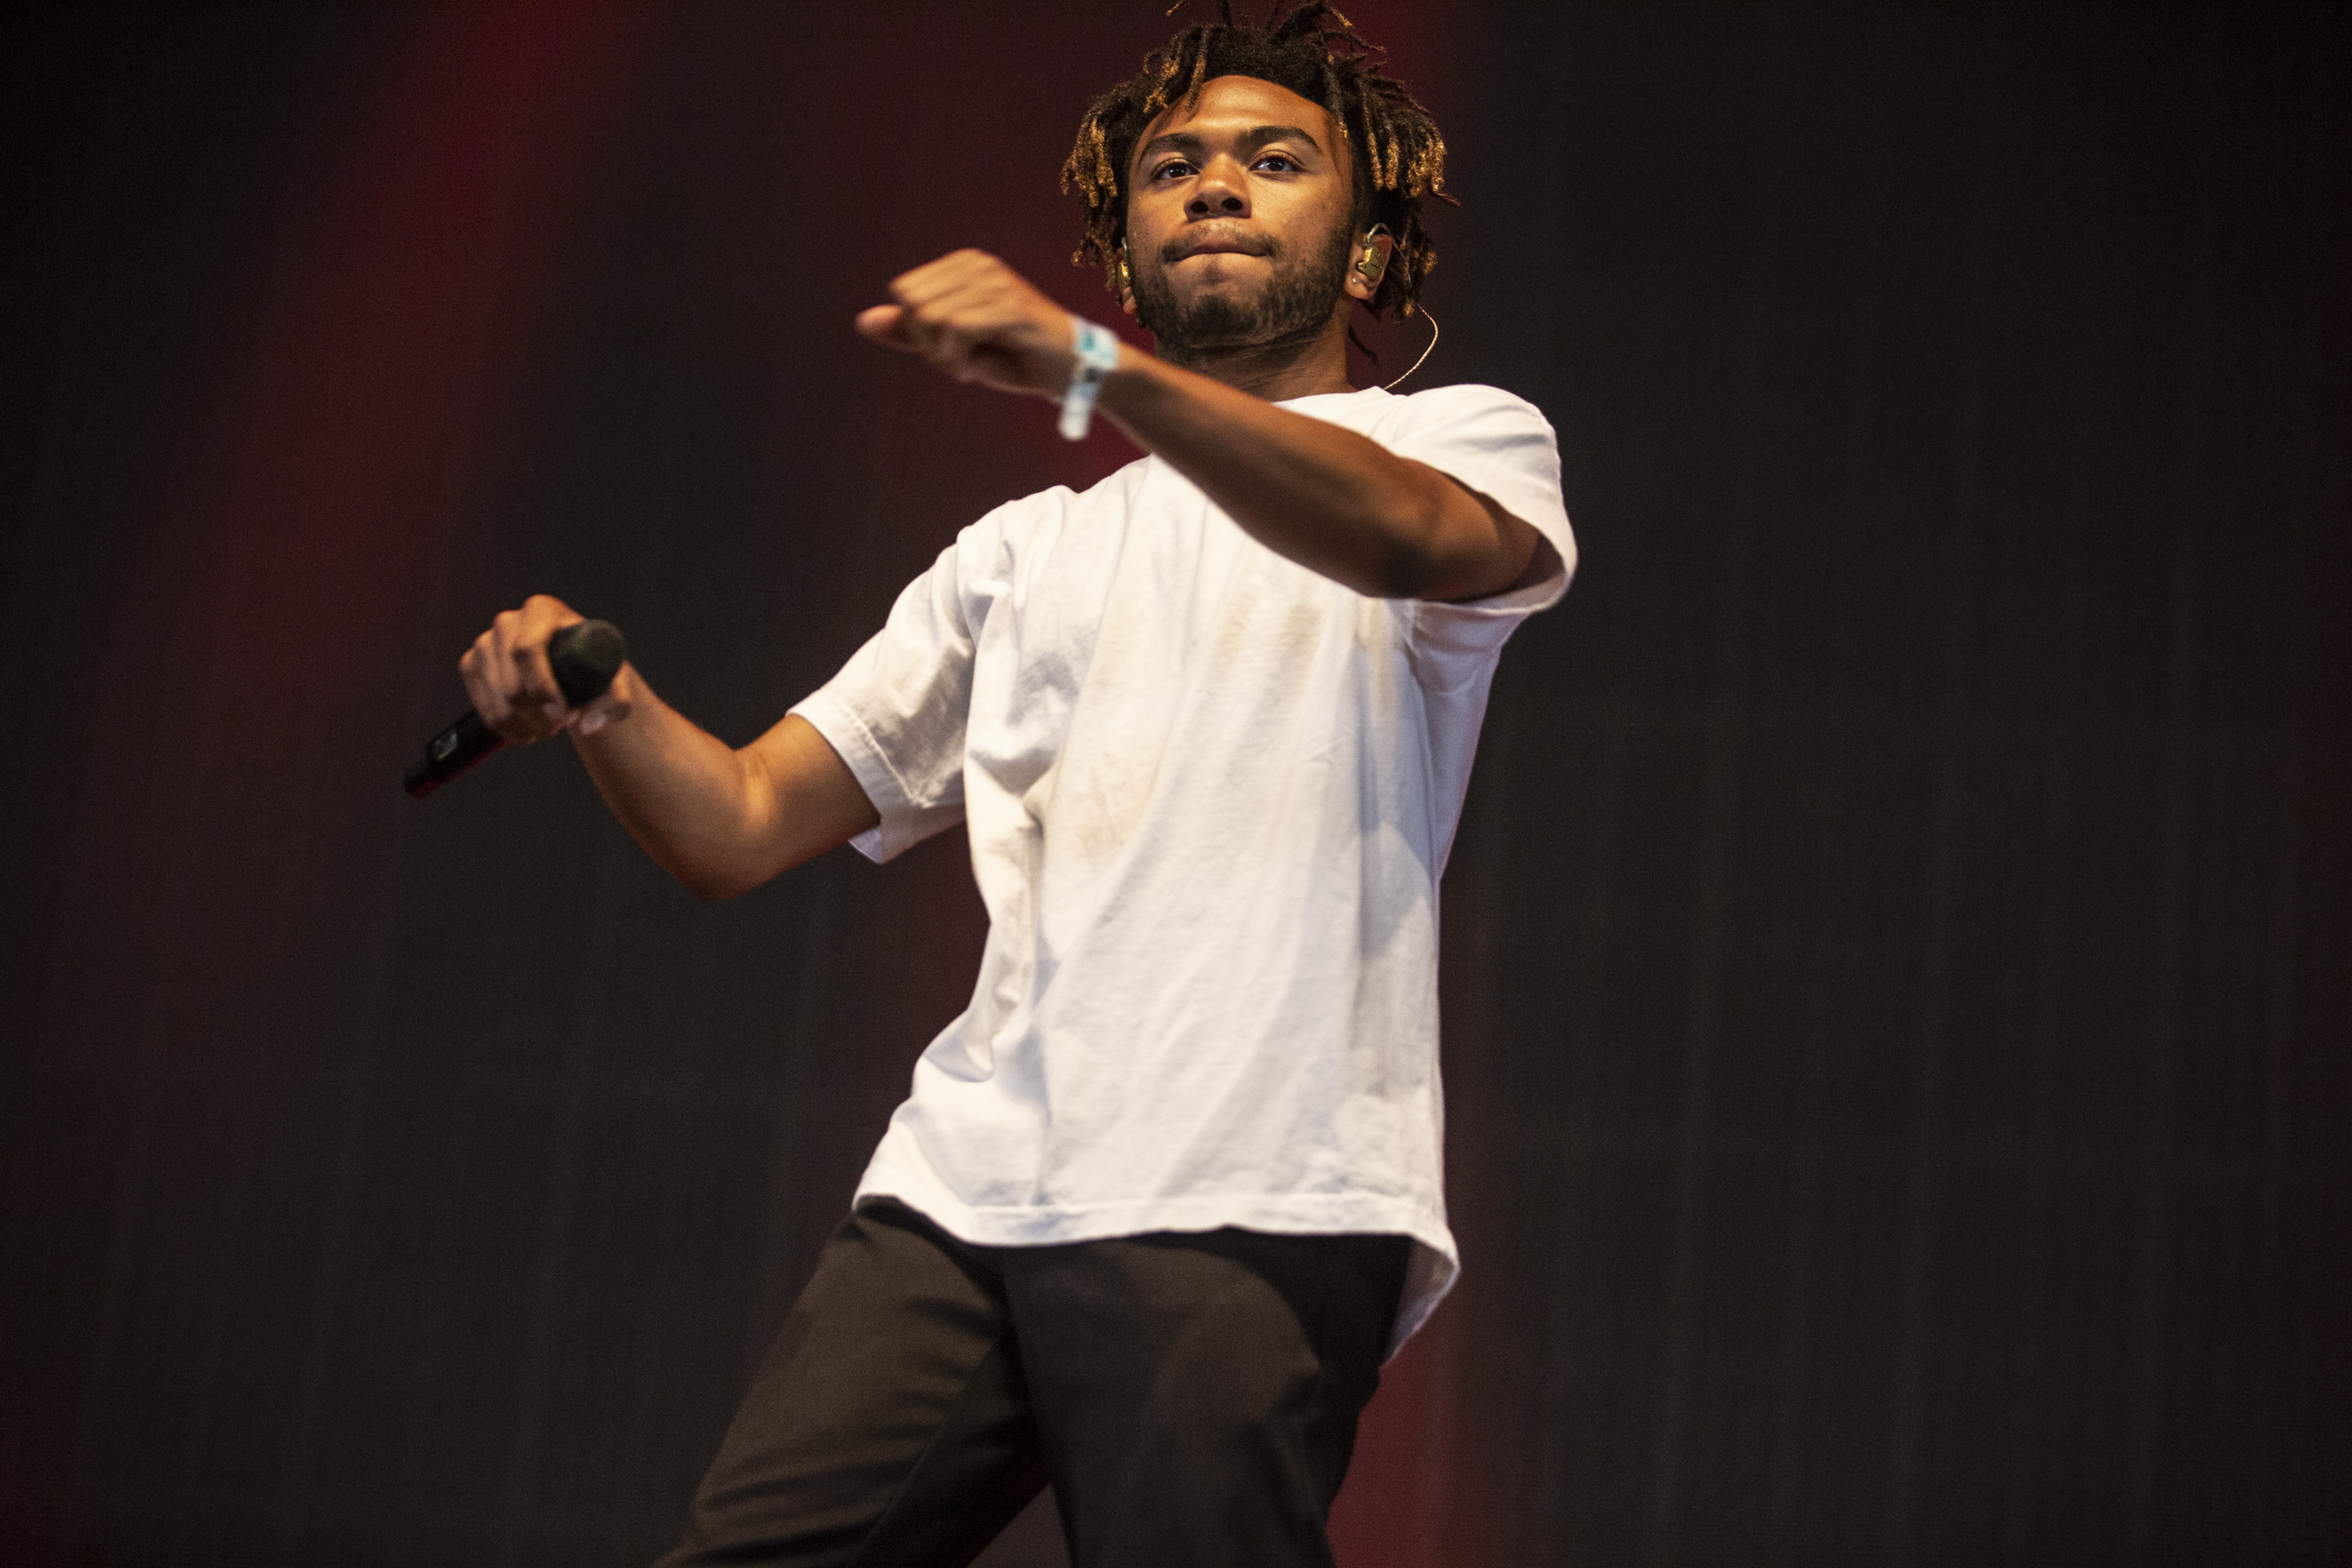 Kevin Abstract shares new project 'ARIZONA baby'